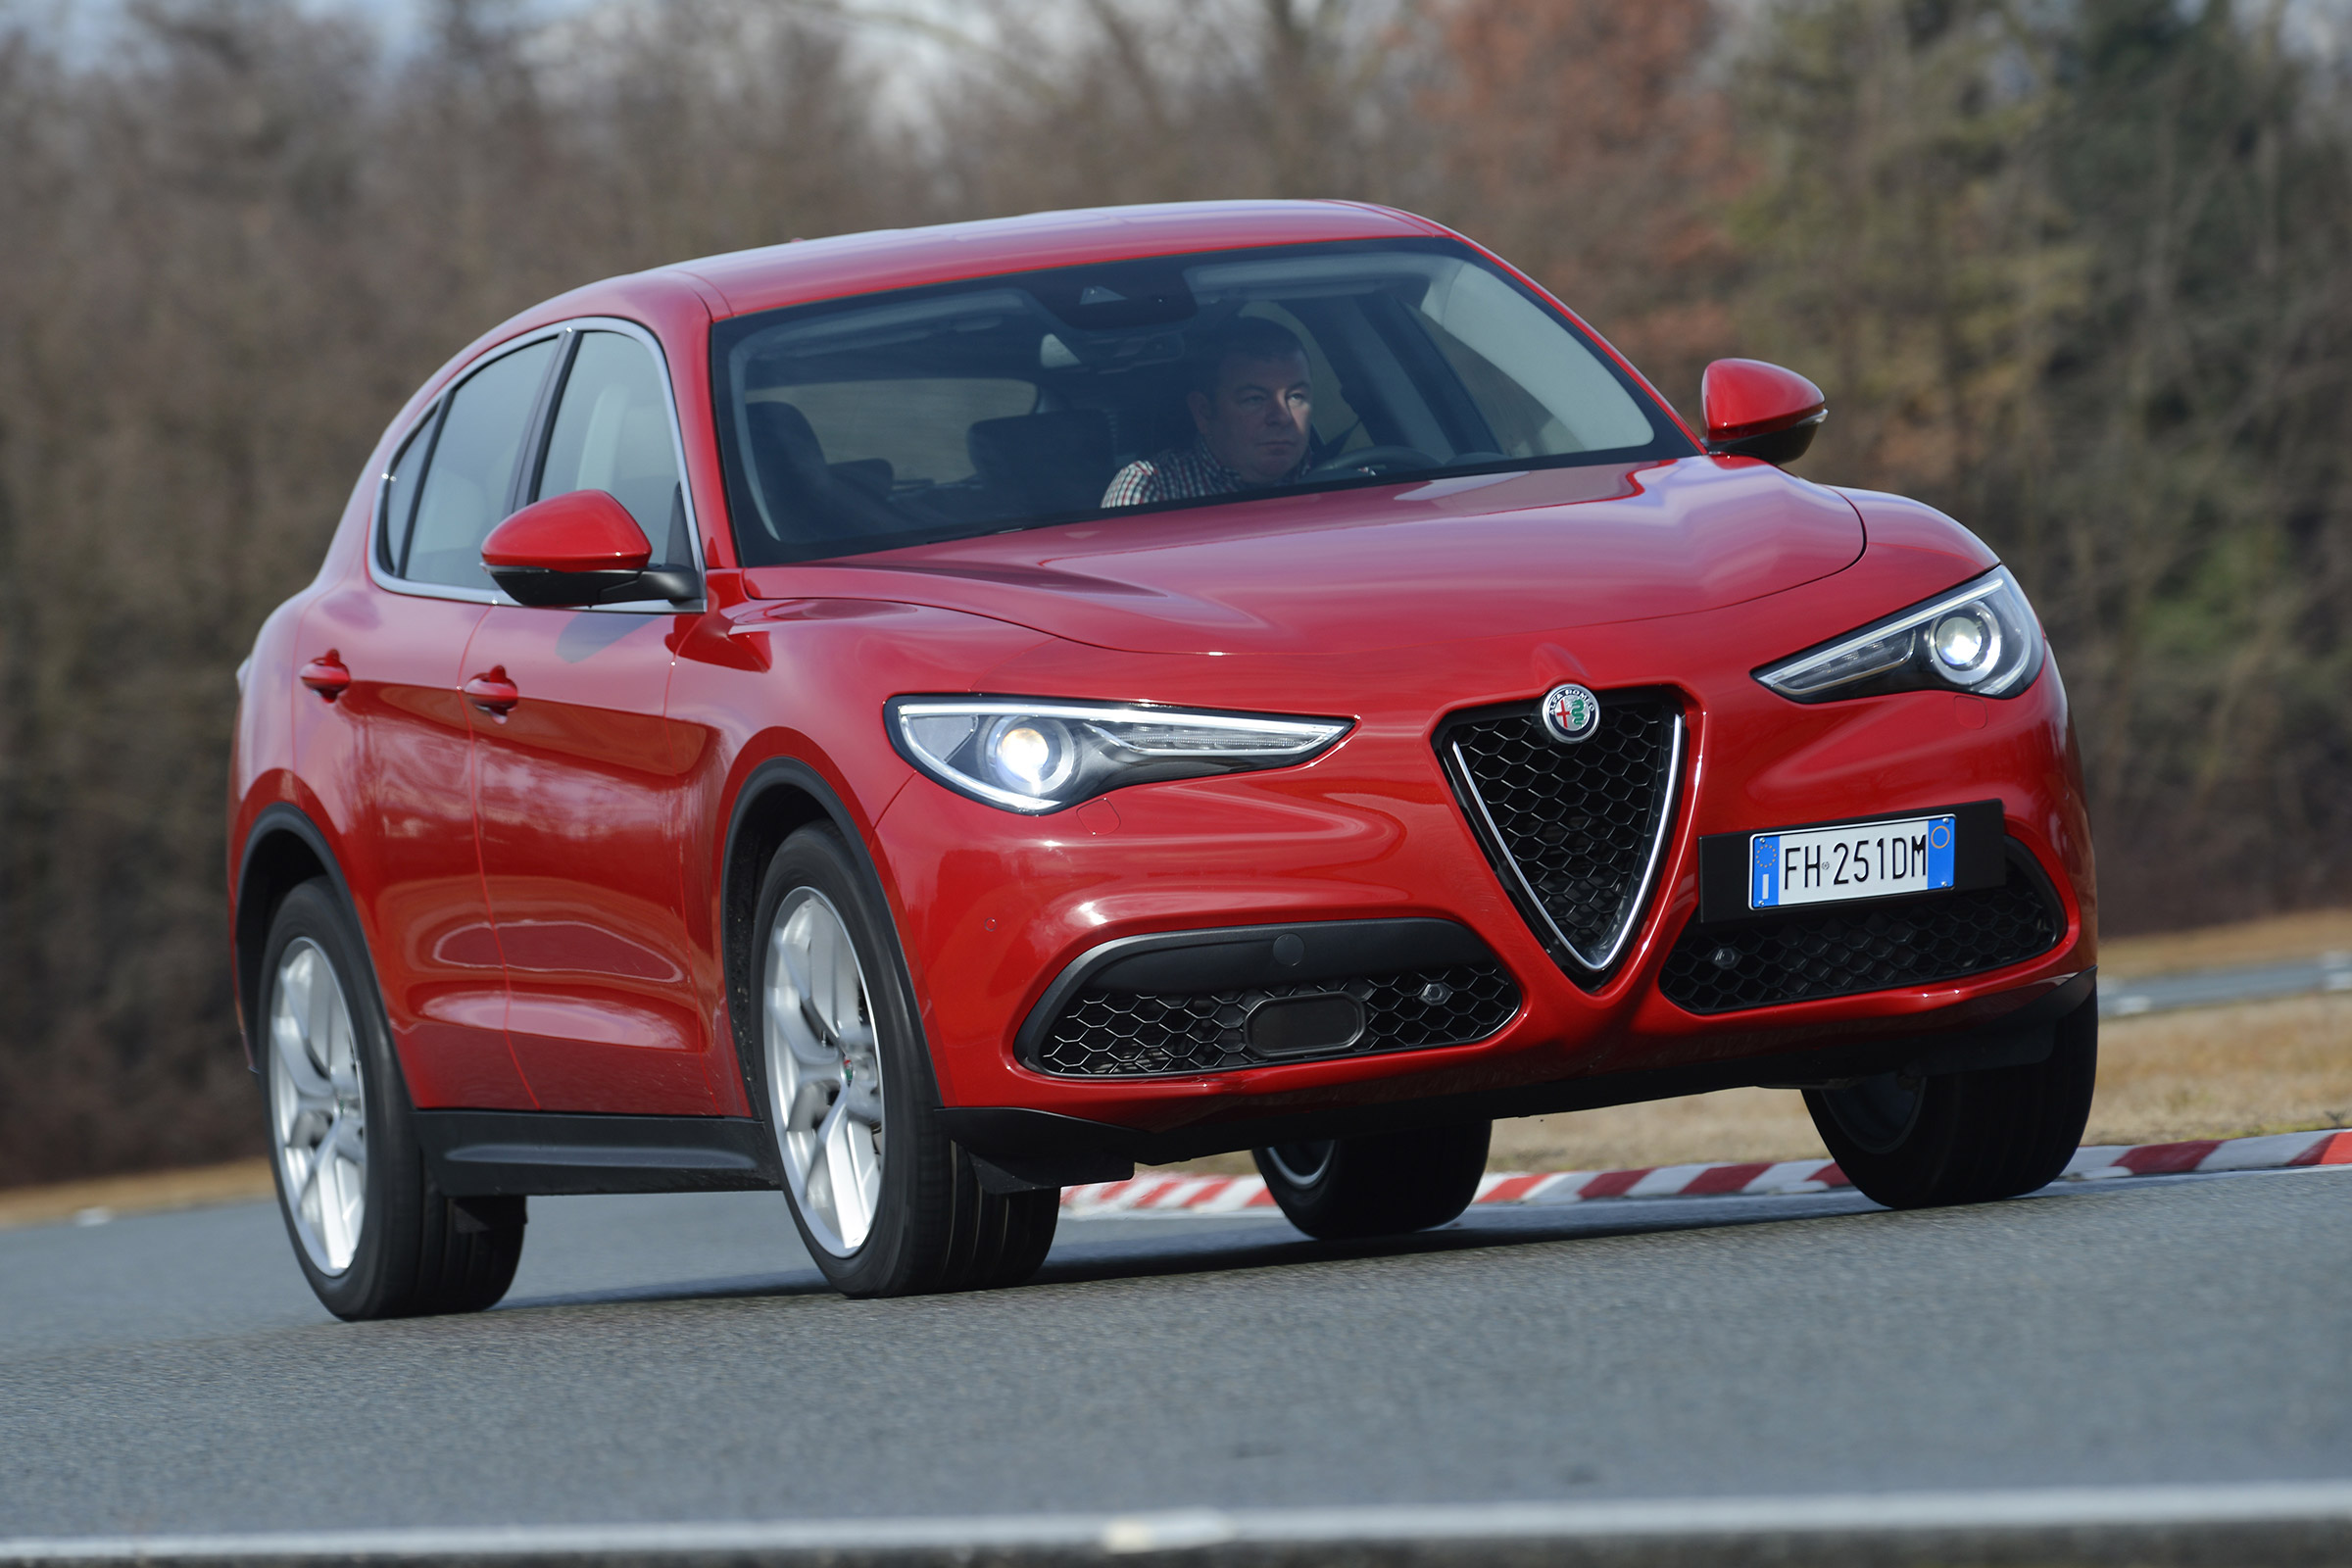 2017 Alfa Romeo Stelvio Test Drive Front And Side View (Photo 18 of 23)